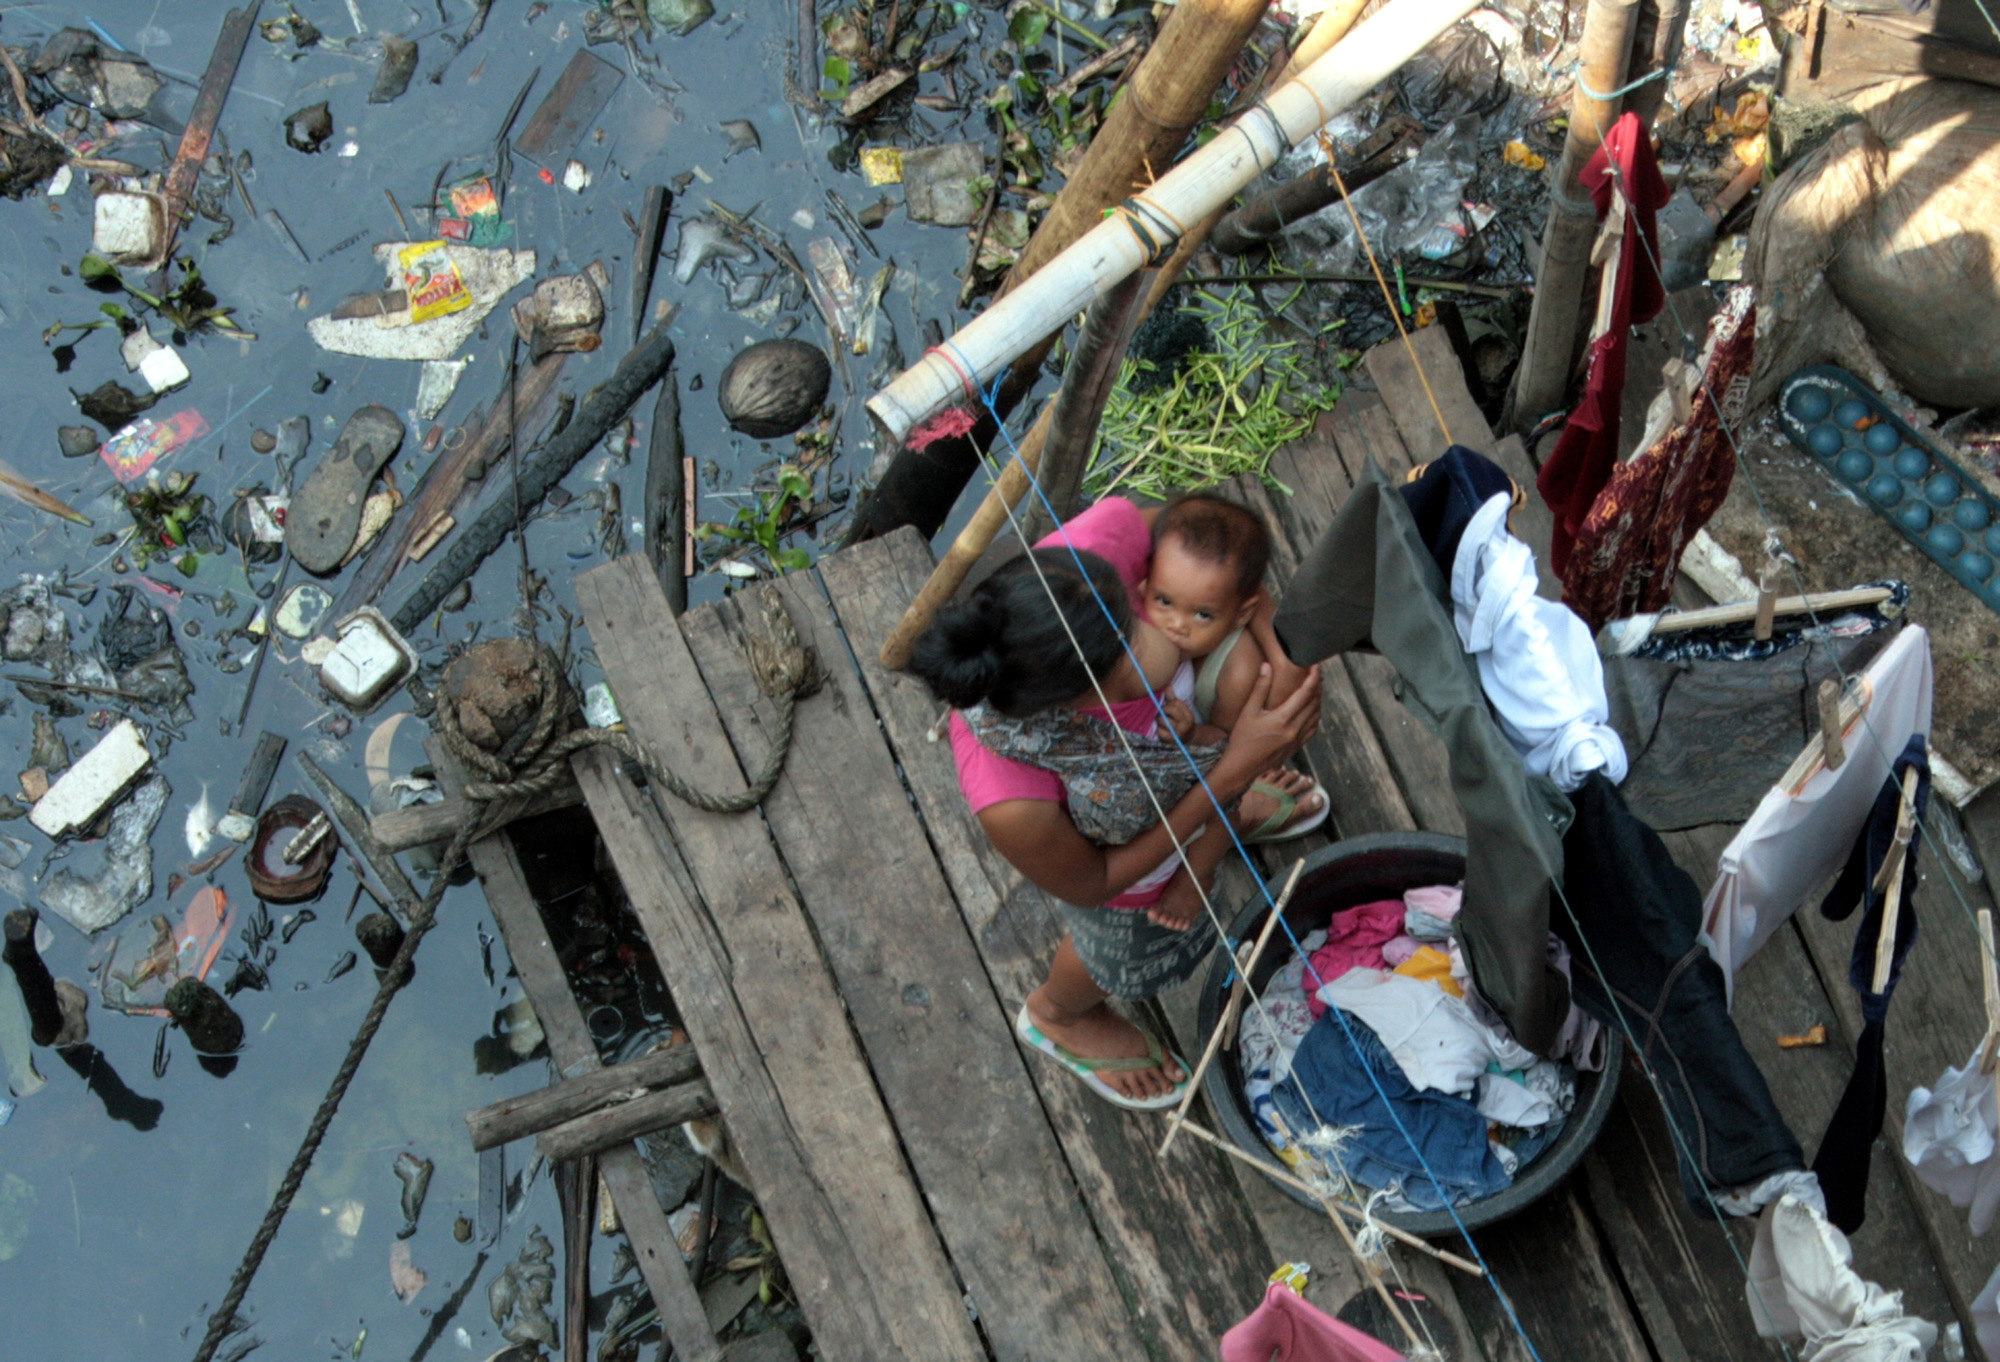 A mother breastfeeds her baby as she washes laundry behind her house on the banks of a polluted river in North Jakarta, Indonesia. Credit: 2007 Bunga Sirait, Courtesy of Photoshare